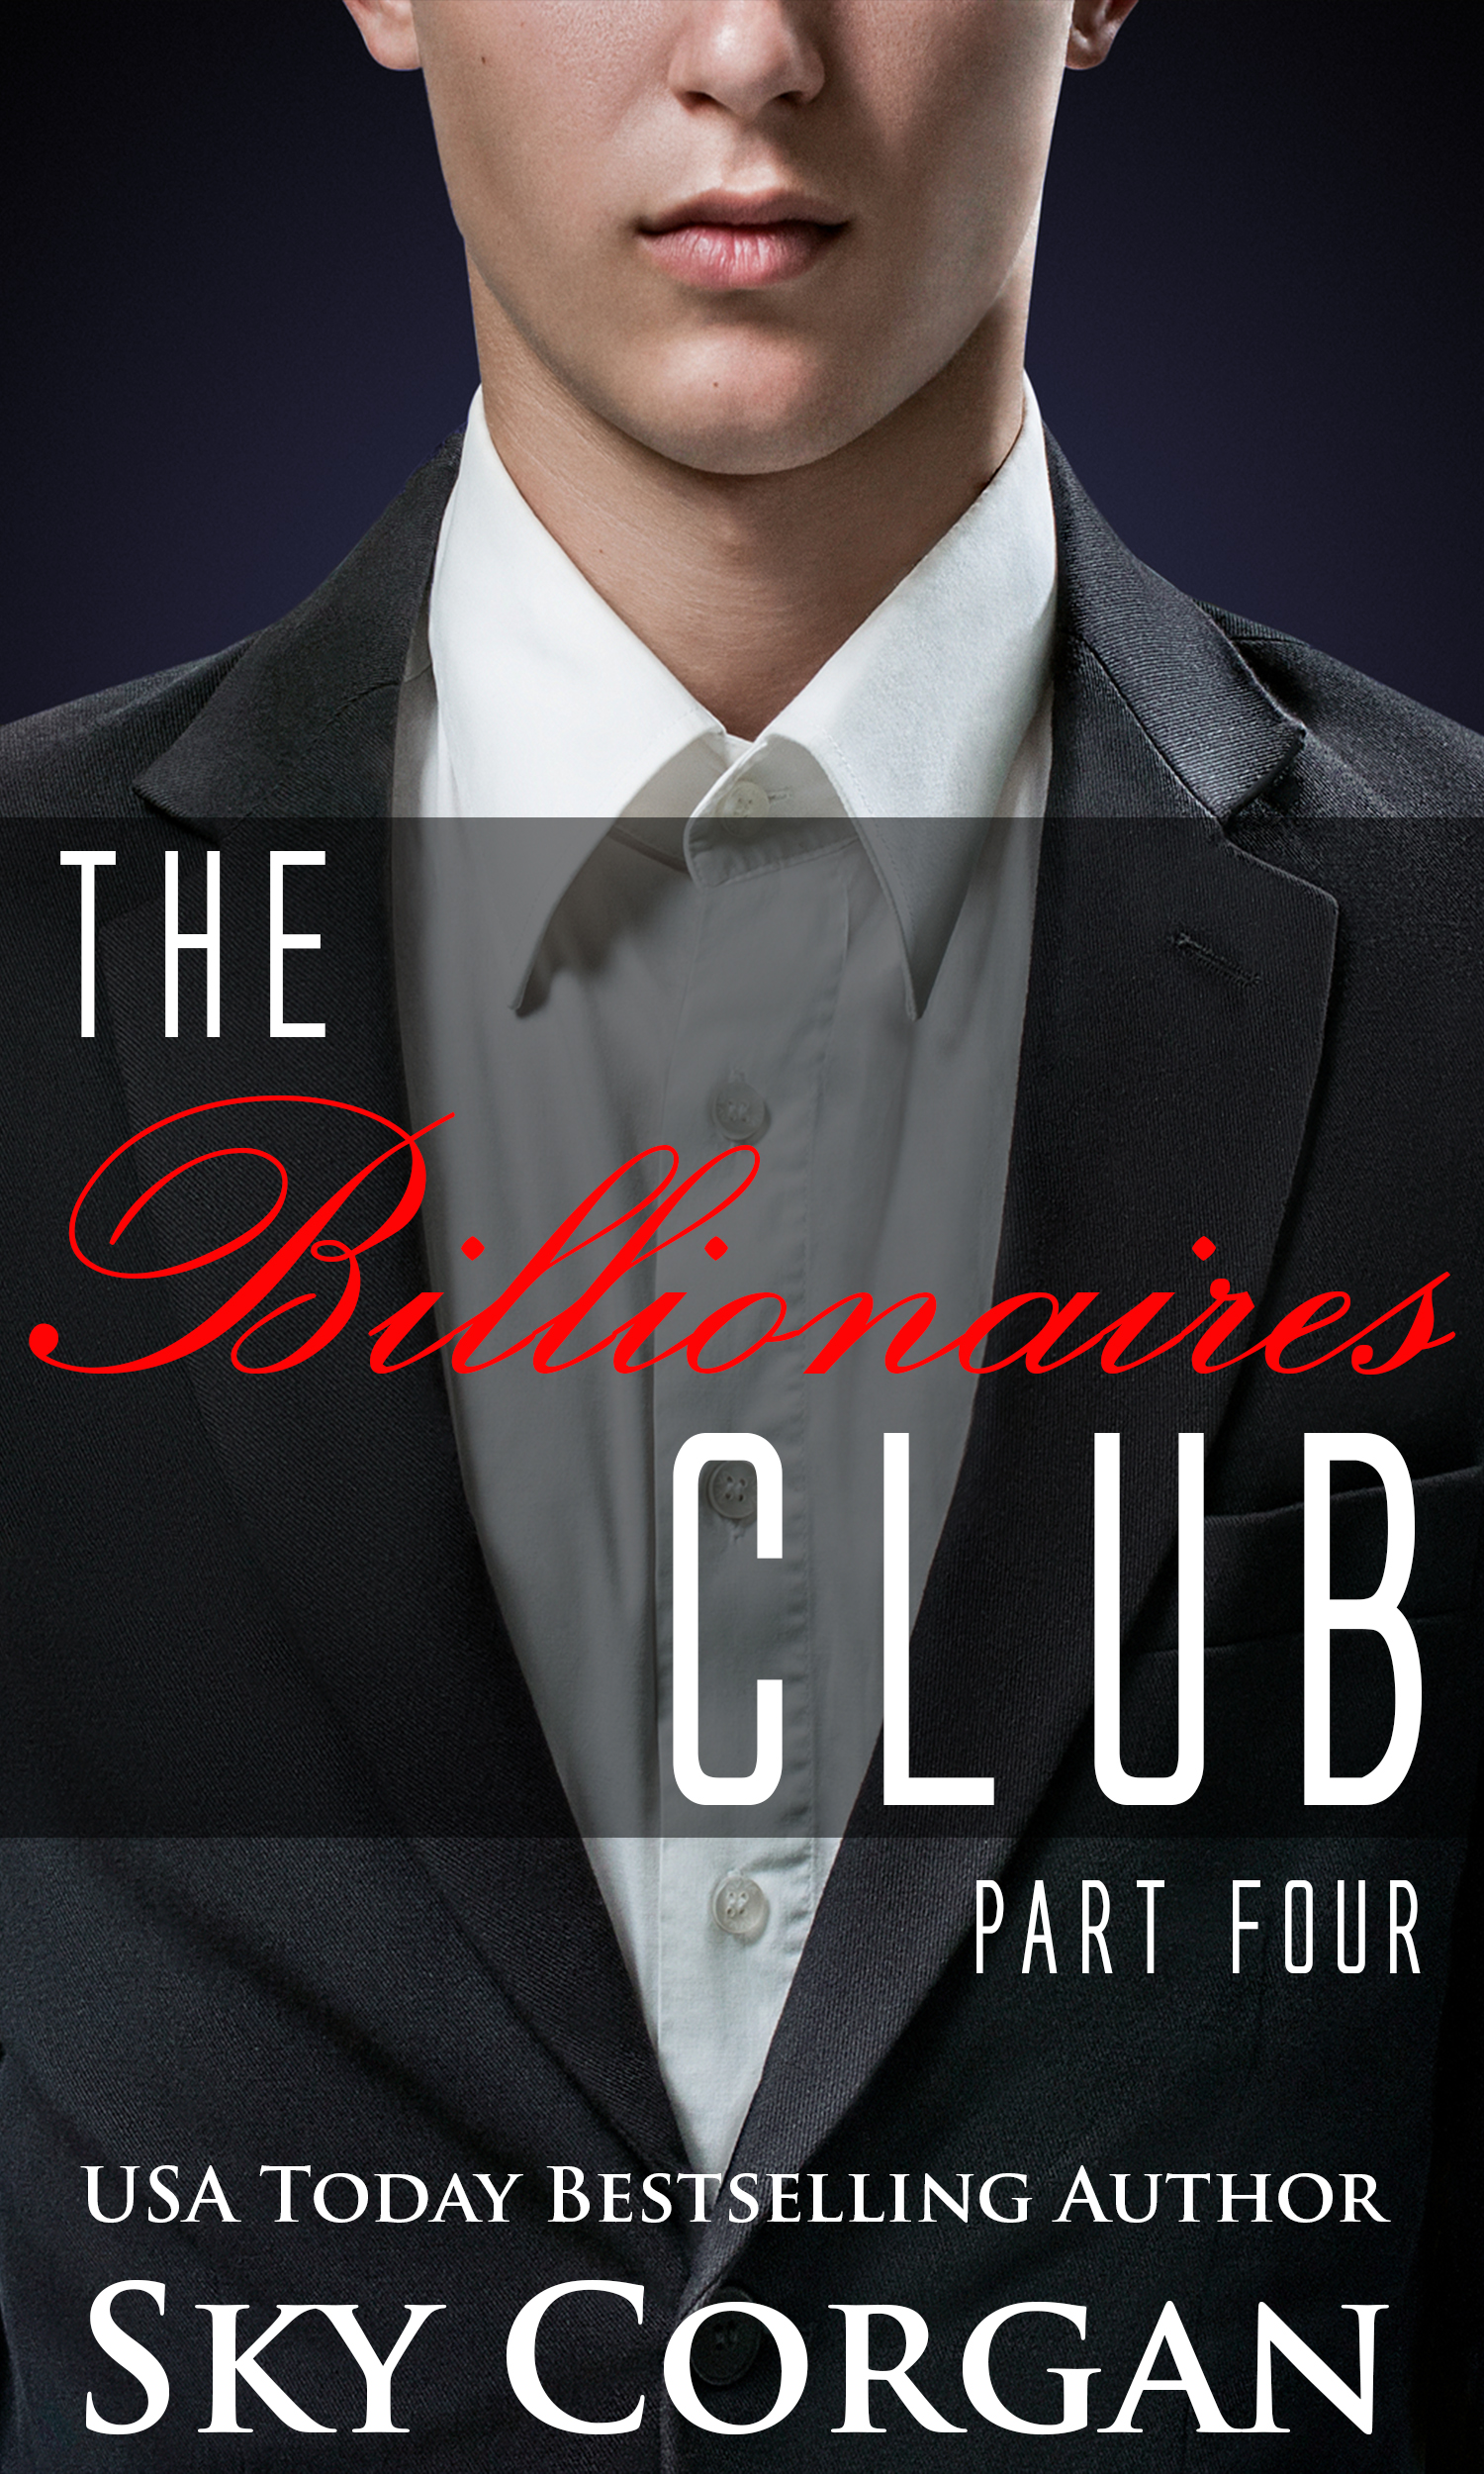 The billionaires club: part four